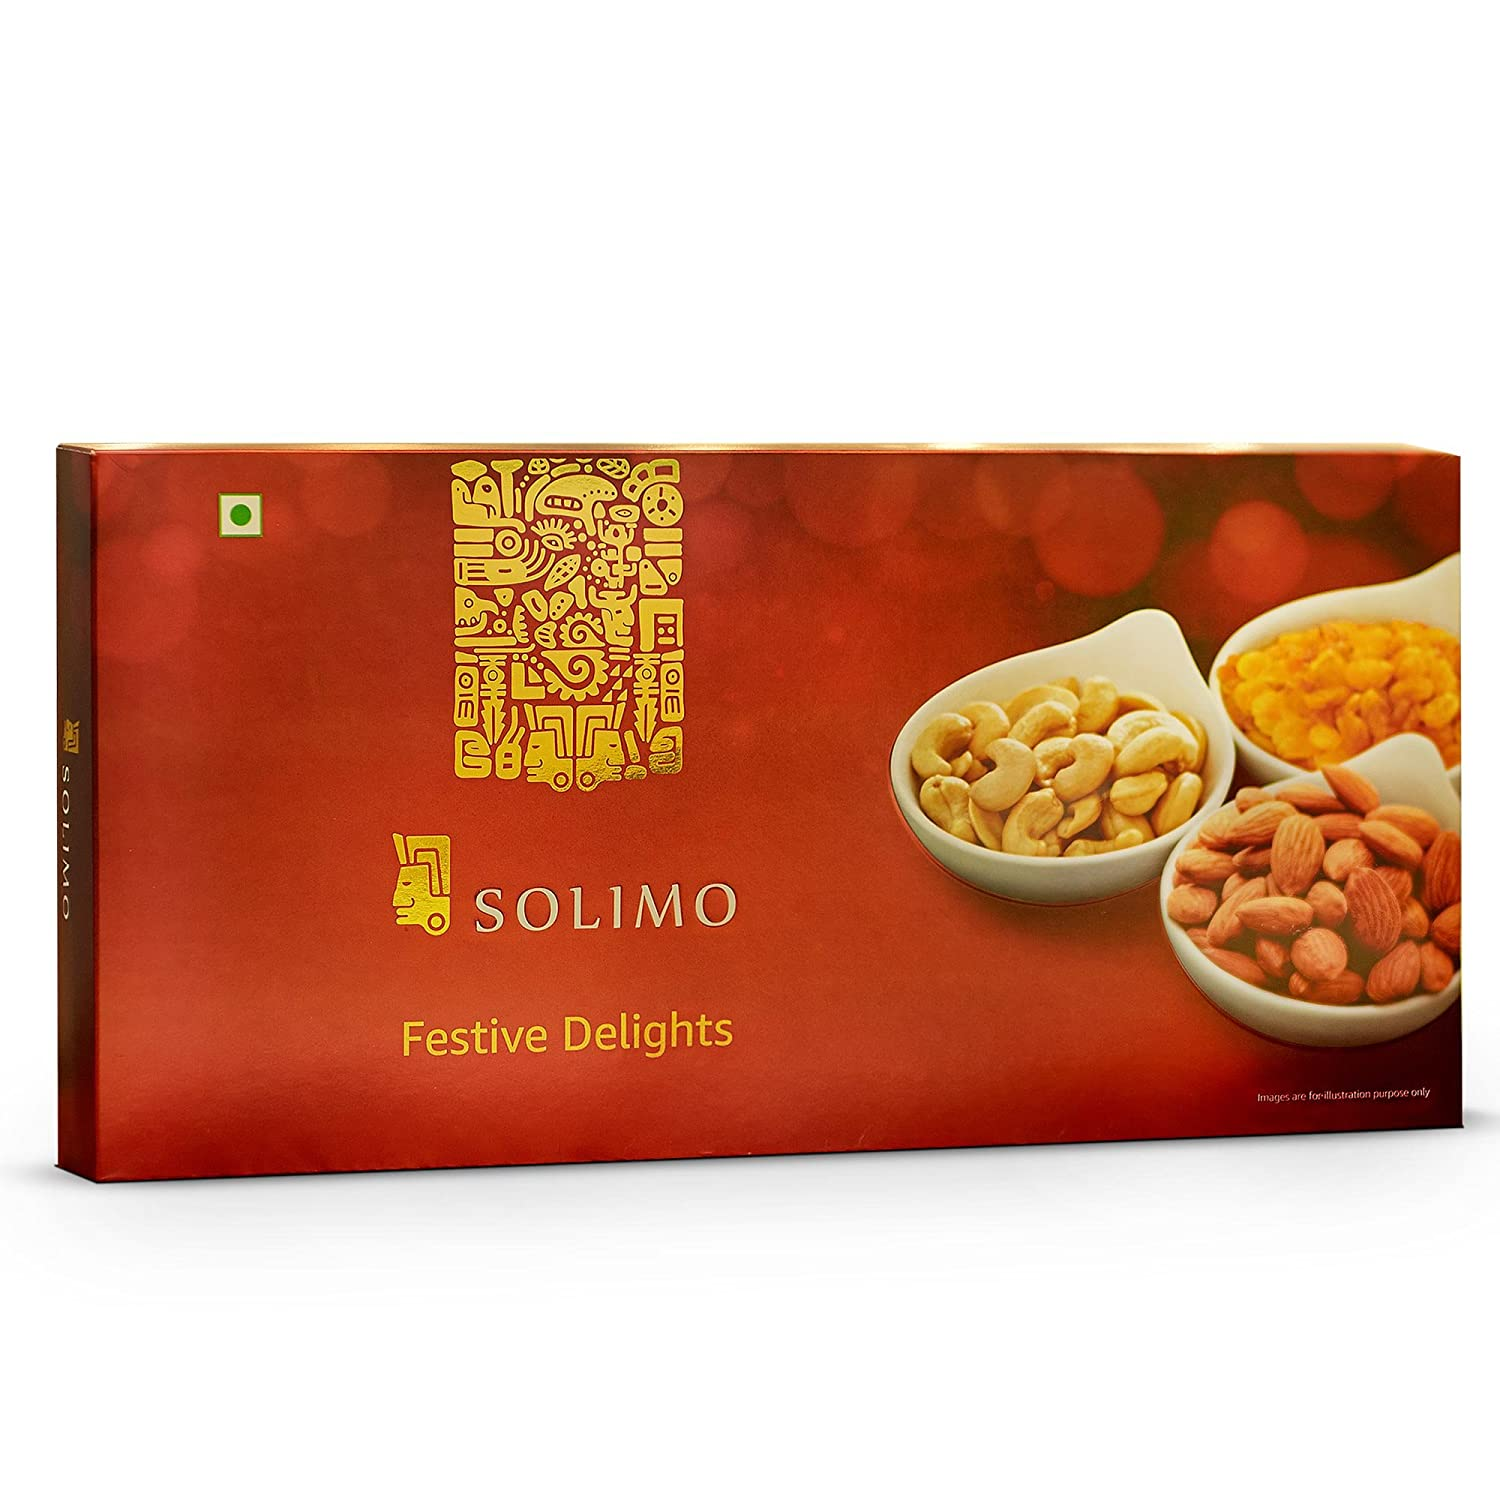 Solimo Festive Delights Gift Pack of Nuts and Dry Fruits, 300g